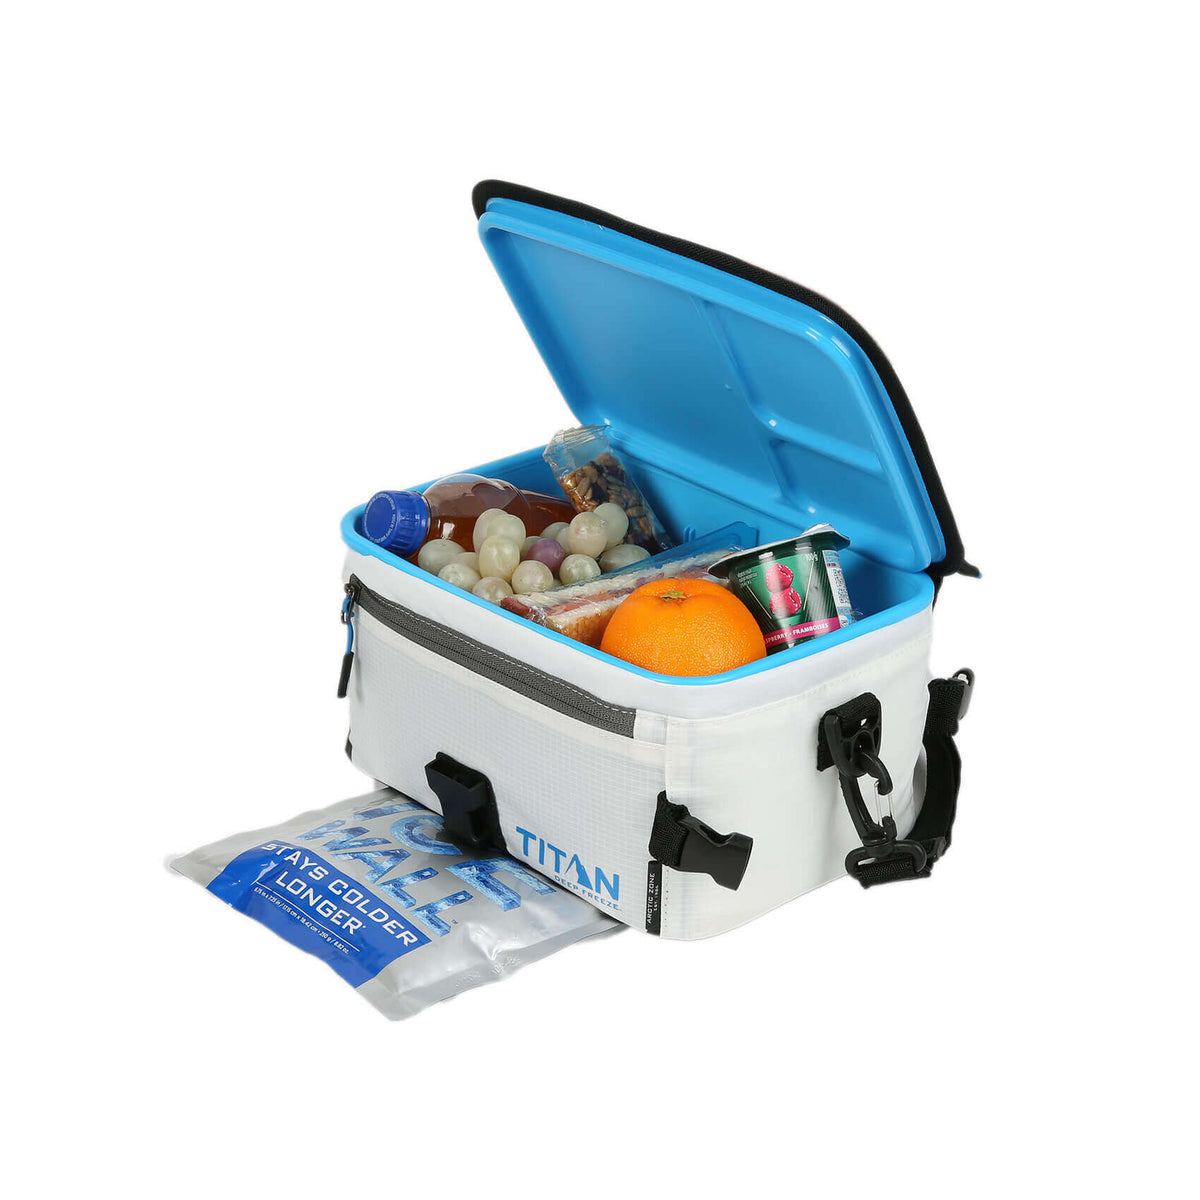 Titan Deep Freeze® Zipperless™ Lunch Box - Open, Full